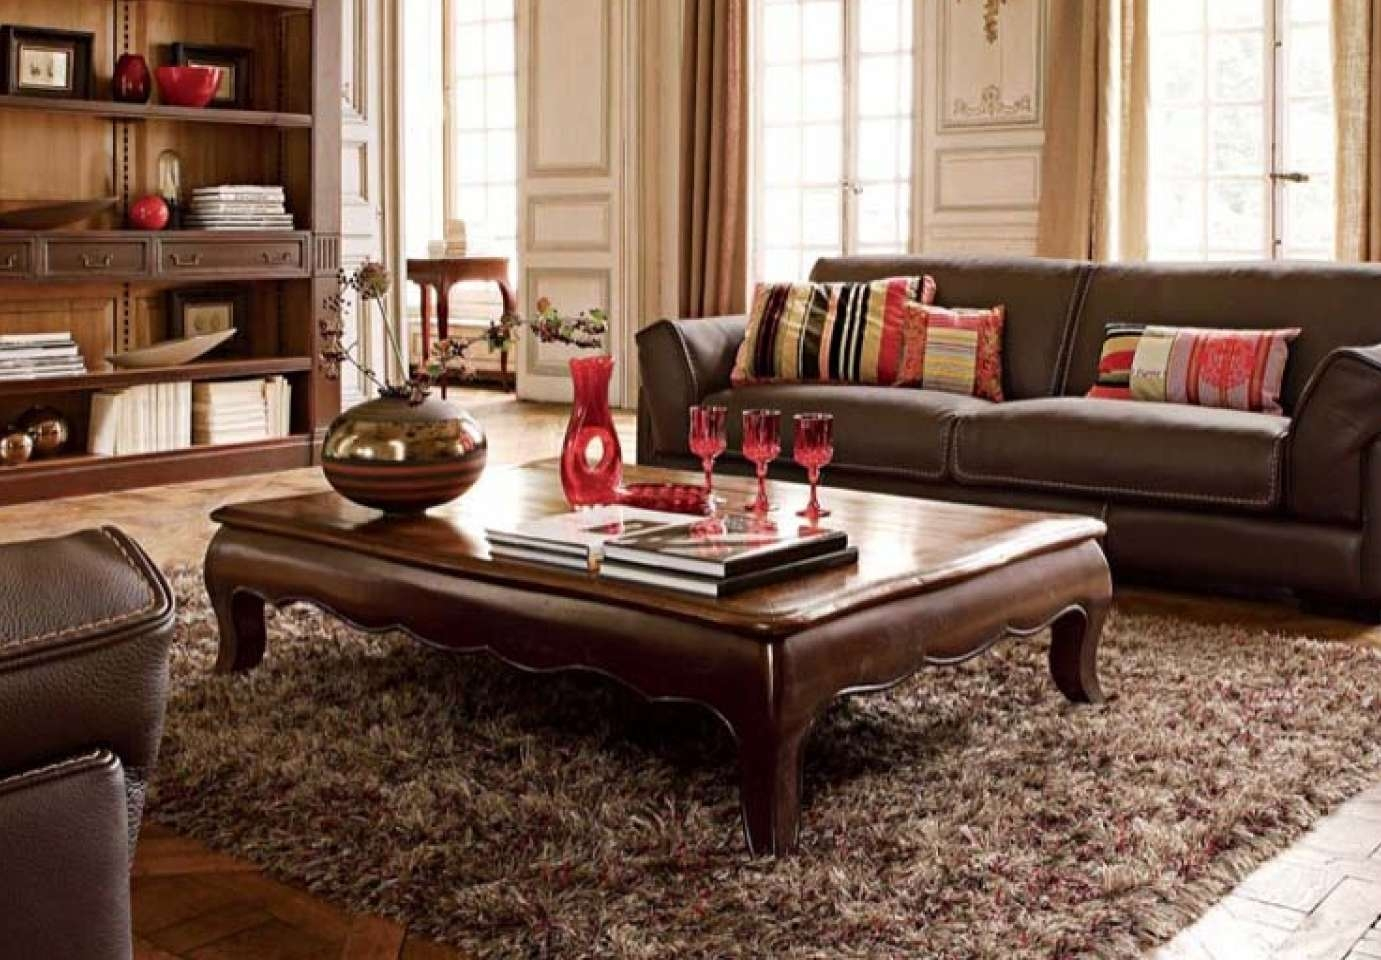 Elegant Large Coffee Table For Interior Design – Large Coffee In Trendy Extra Large Square Coffee Tables (View 13 of 20)